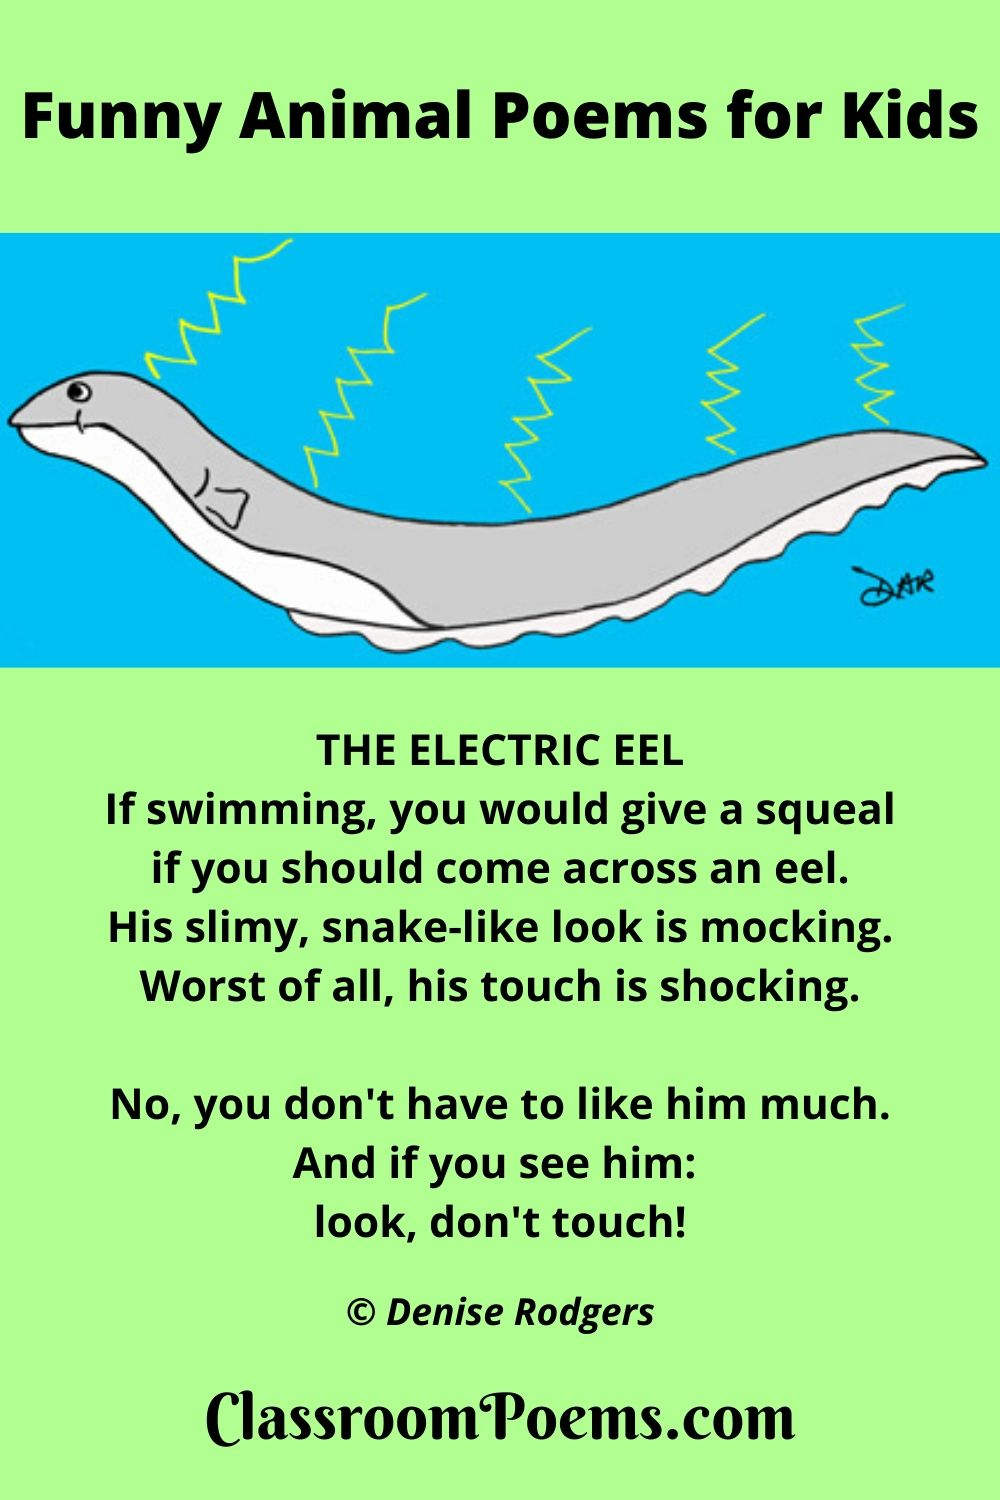 Electric Eel, a funny poem for kids by Denise Rodgers on ClassroomPoems.com.